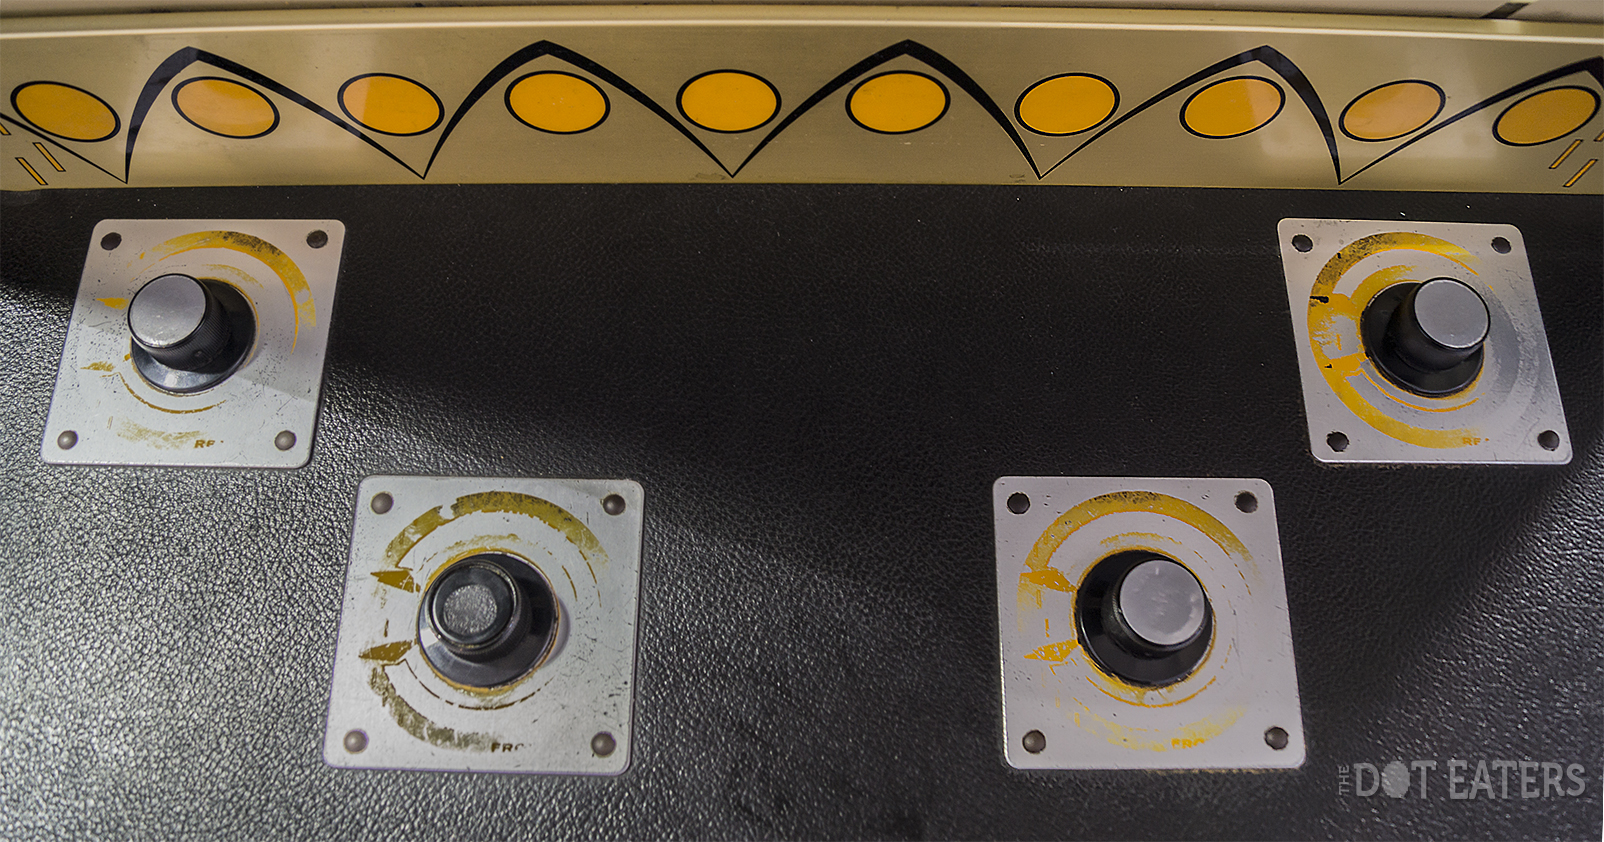 Control panel for Winner IV, an arcade video game PONG clone by Midway 1973